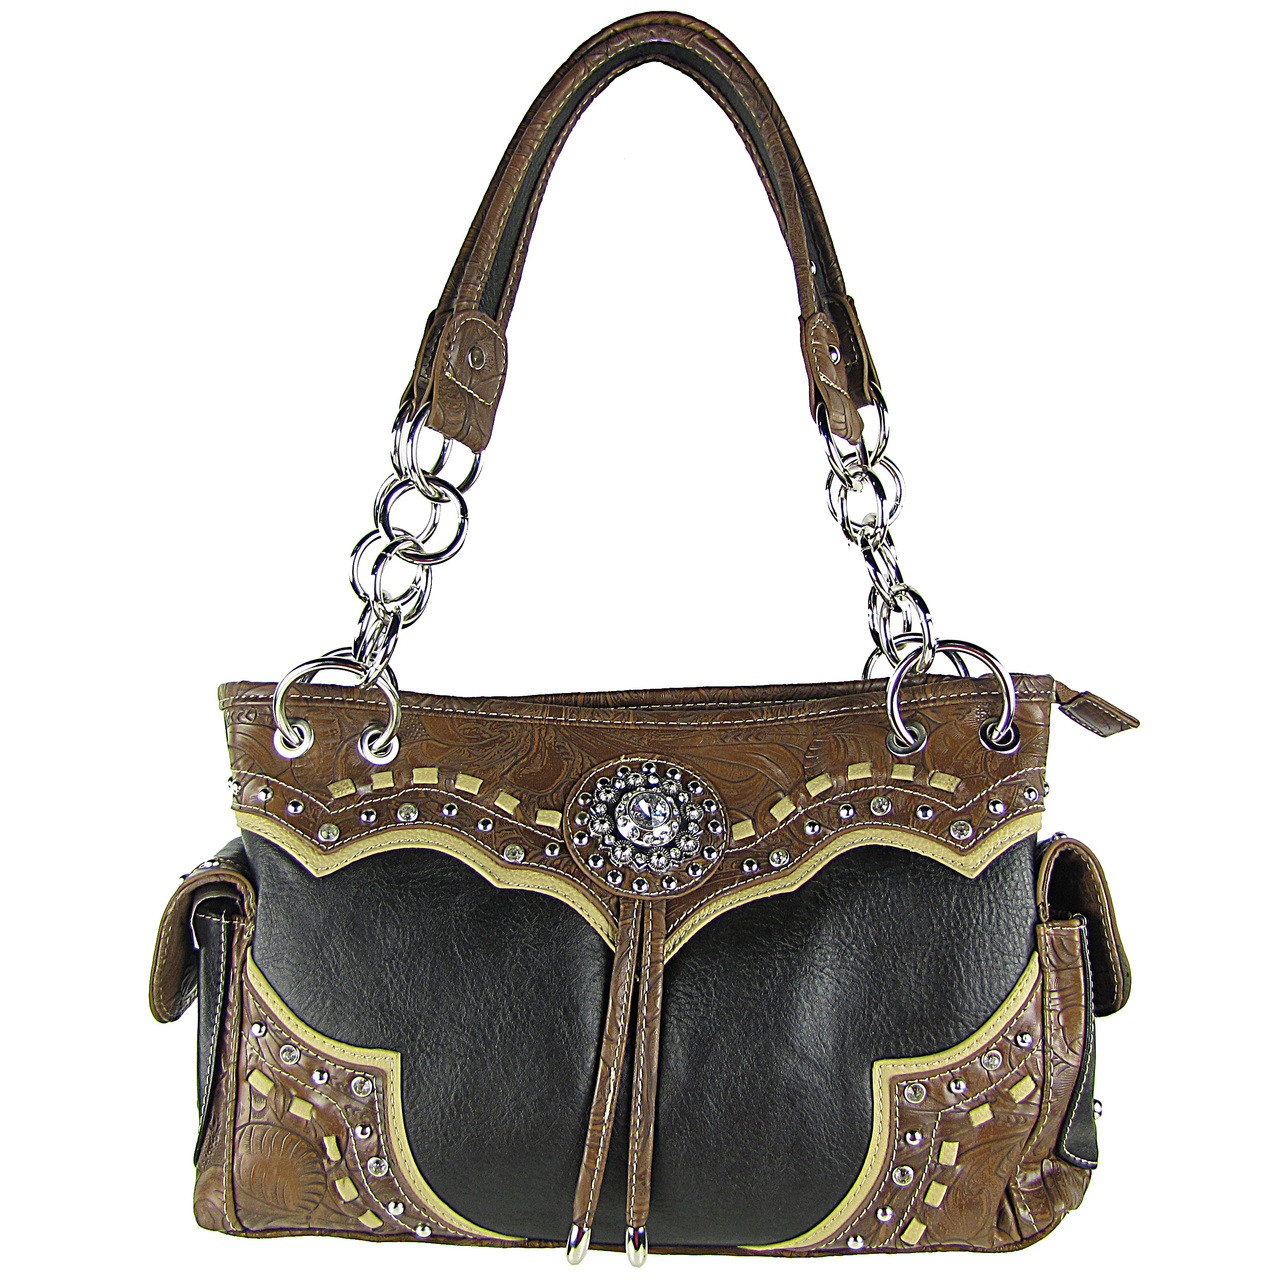 BLACK WESTERN STUDDED FLOWER RHINESTONE LOOK SHOULDER HANDBAG HB1-CHF0063BLK